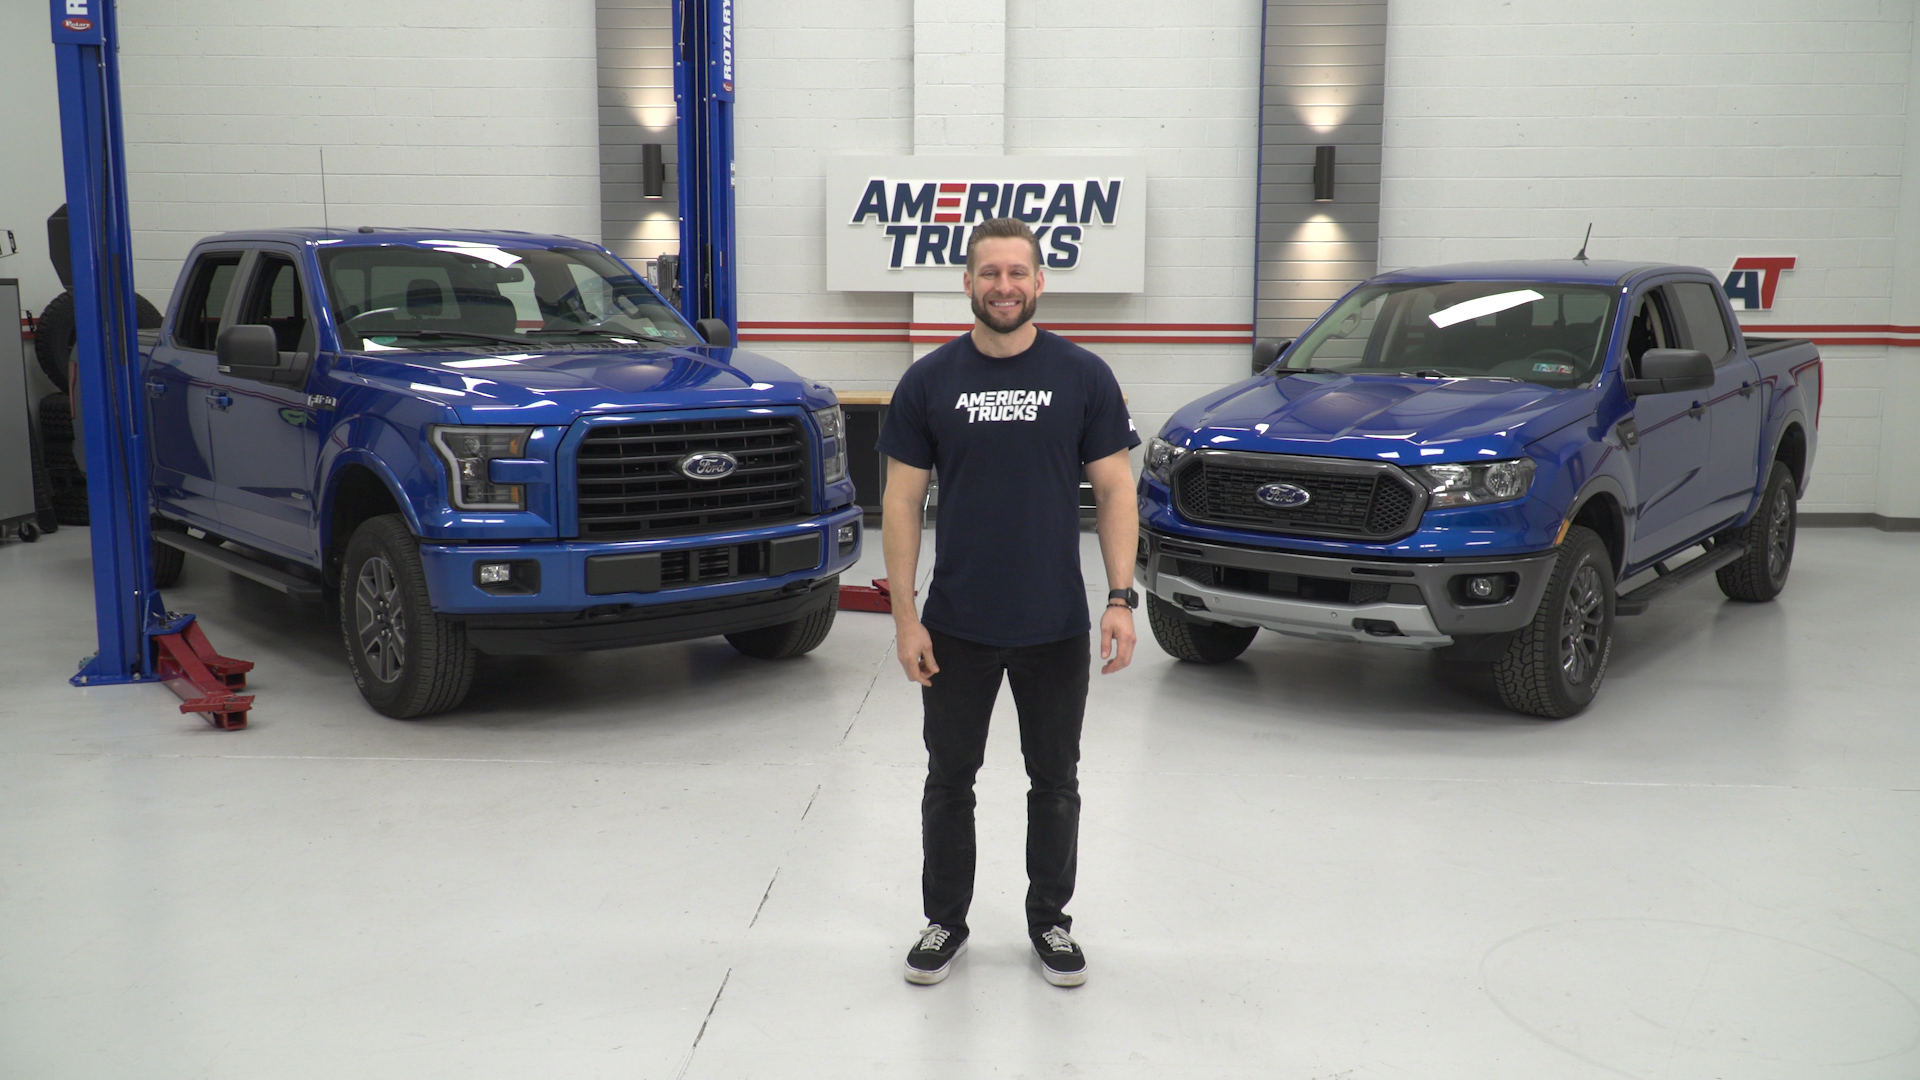 Ford Ranger Vs F150 | How Does The Ford Ranger Compare to The F150?